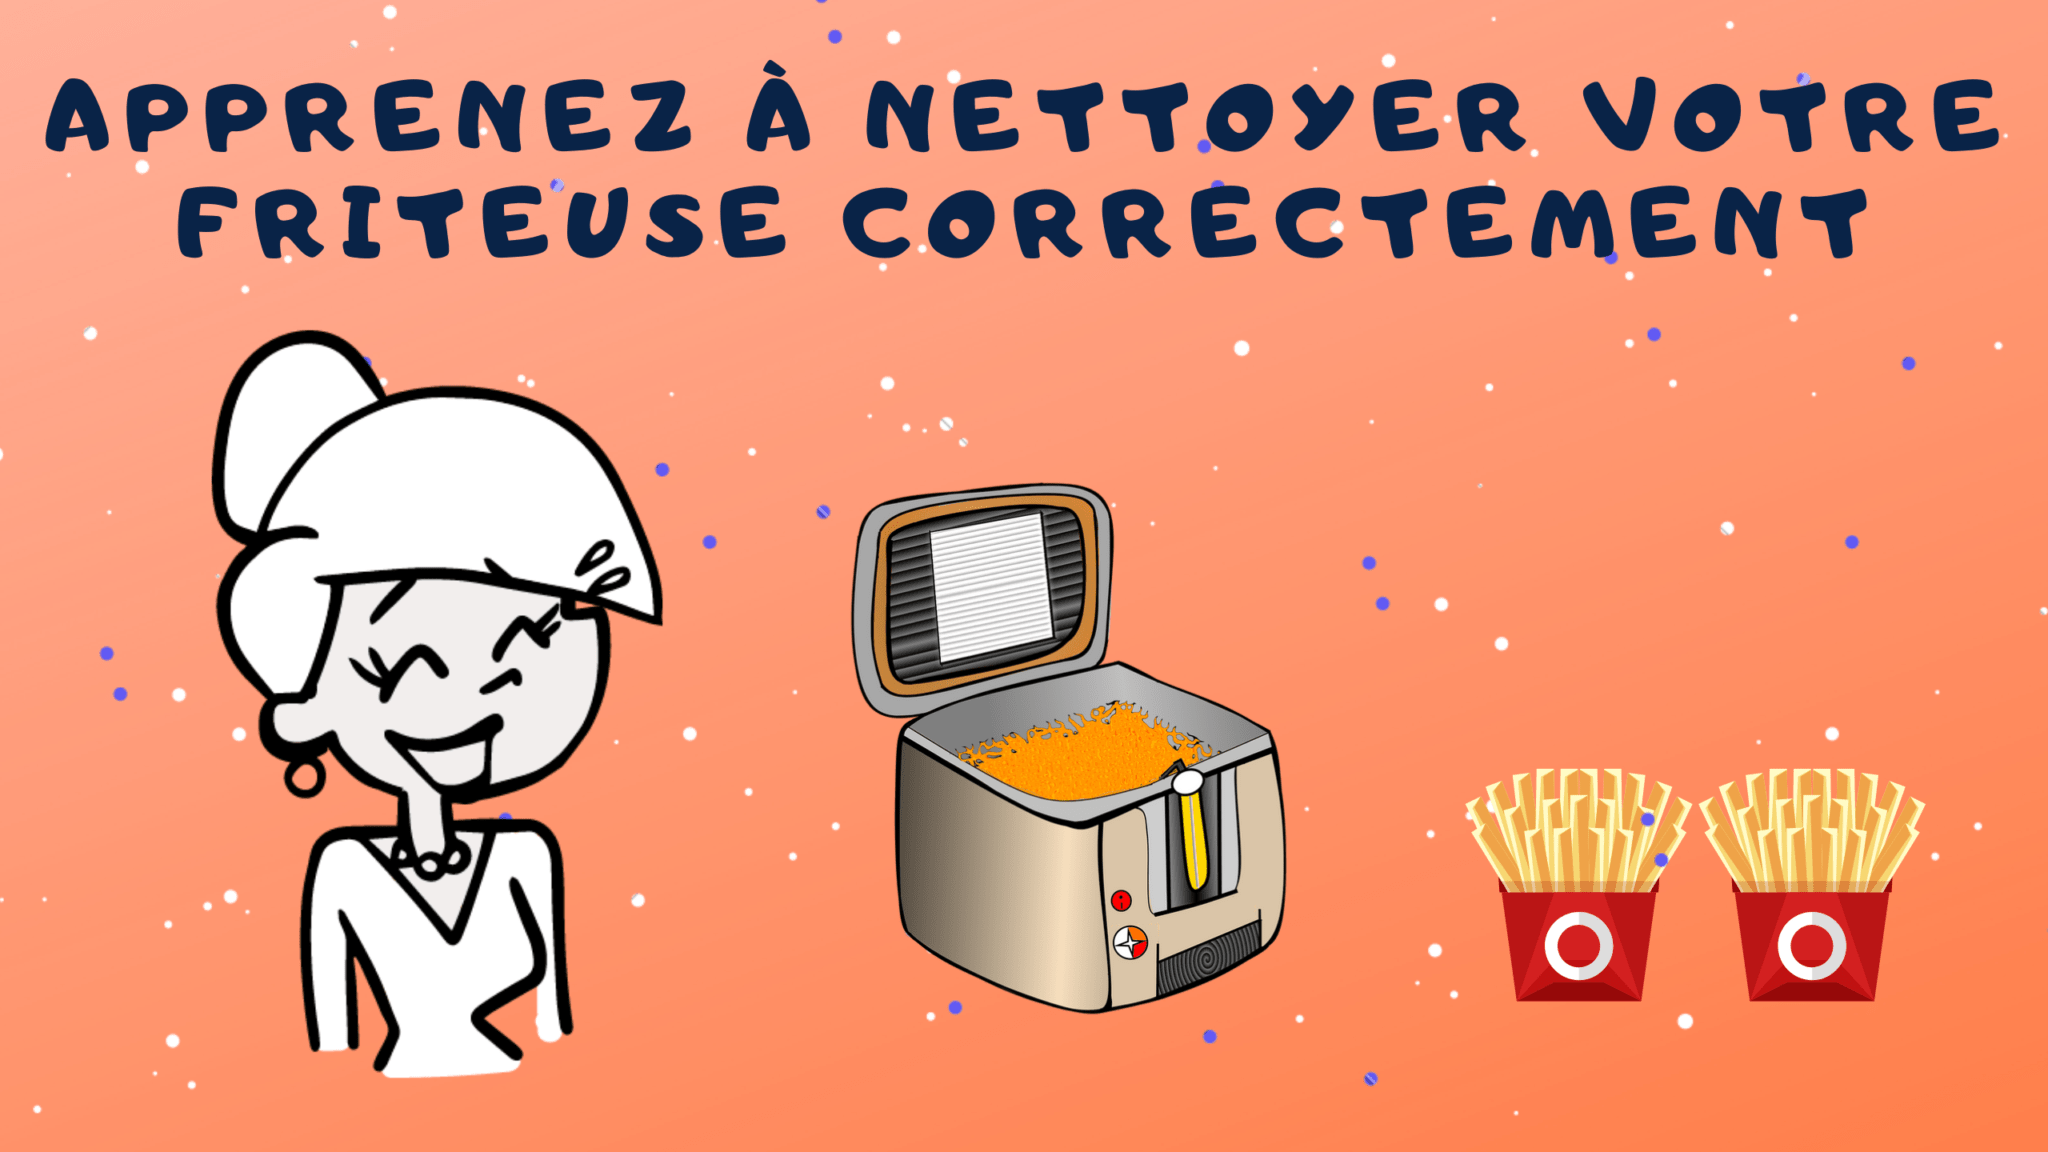 comment nettoyer une friteuse